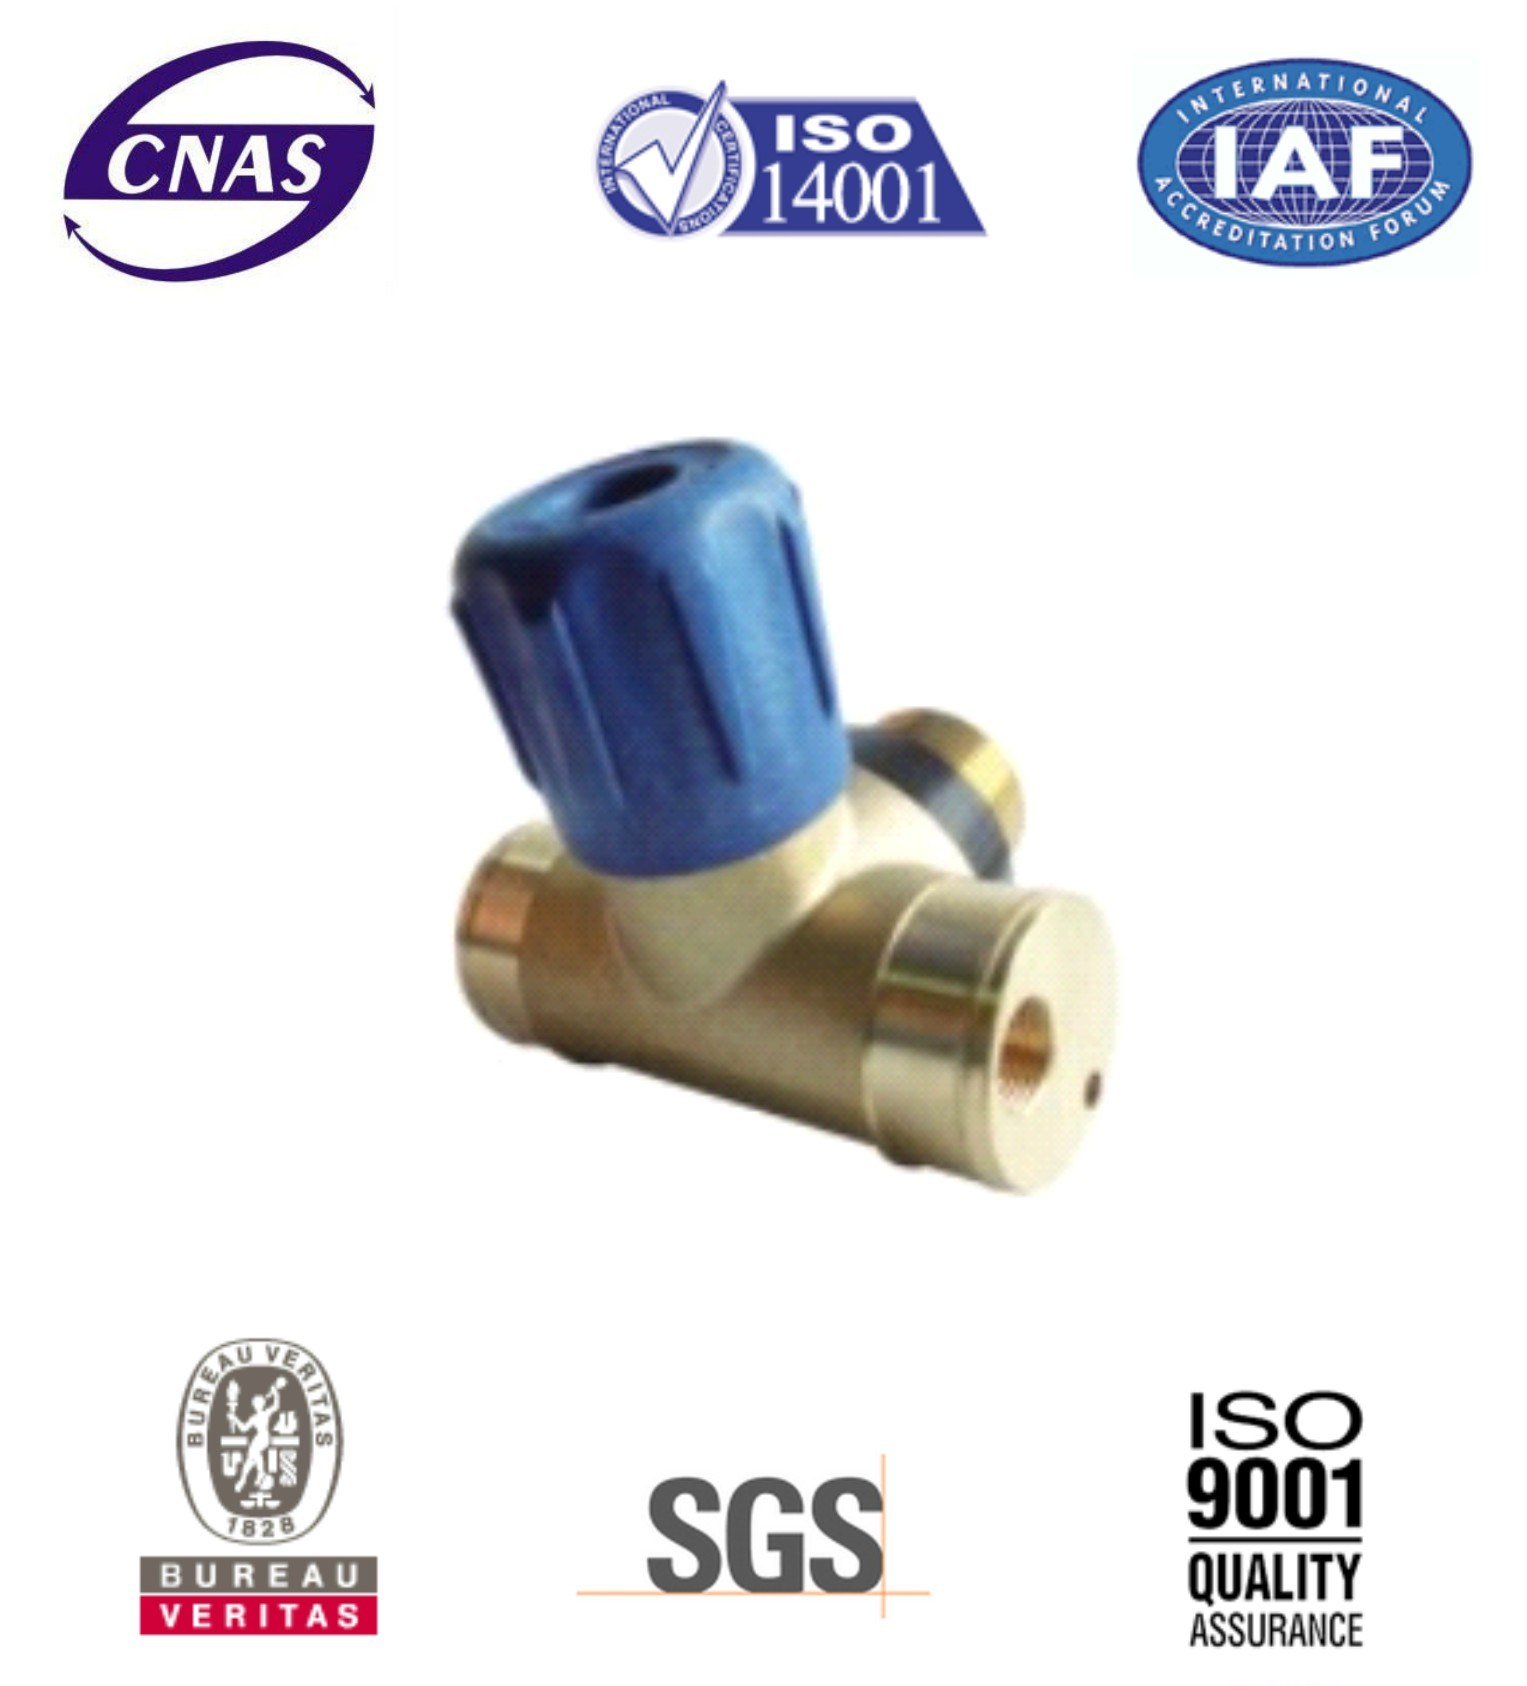 CNG Cylinder Valve - CNG Valve - Cylinder Valves for Vehicle